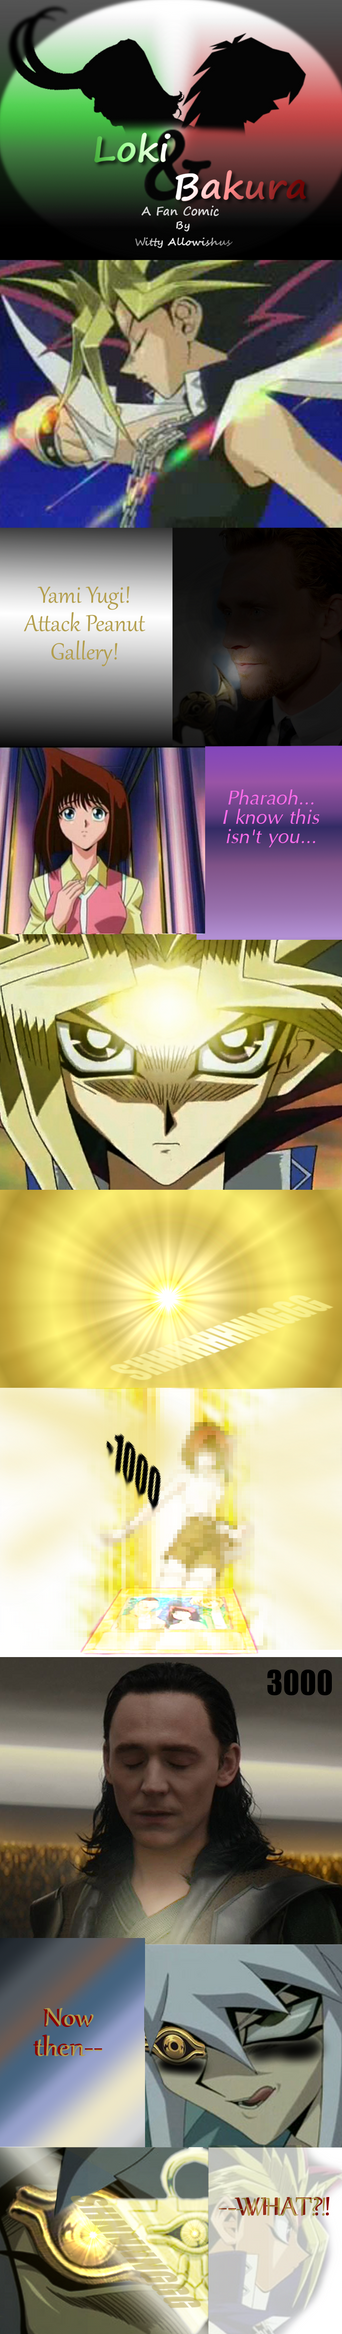 Loki and Bakura XLII - Yami Yugi Summoned by Loki-Bakura